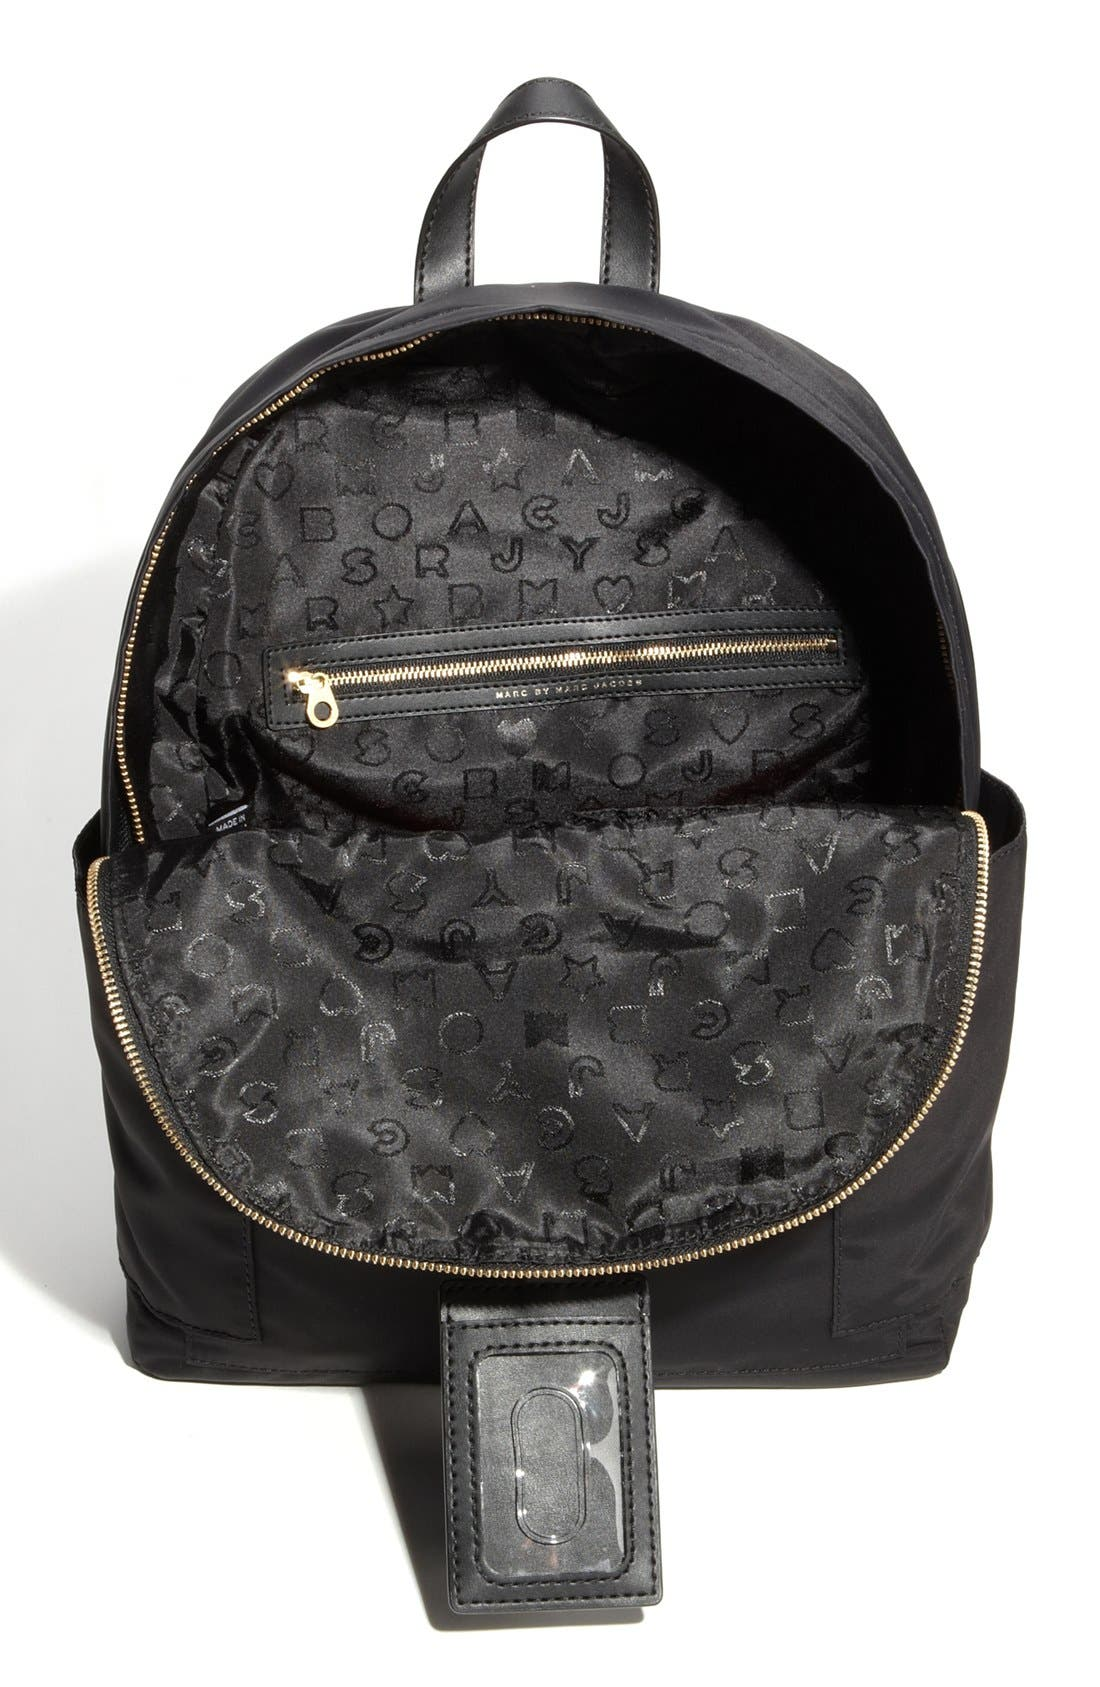 MARC JACOBS,                             MARC BY MARC JACOBS 'Preppy Nylon' Backpack,                             Alternate thumbnail 2, color,                             002